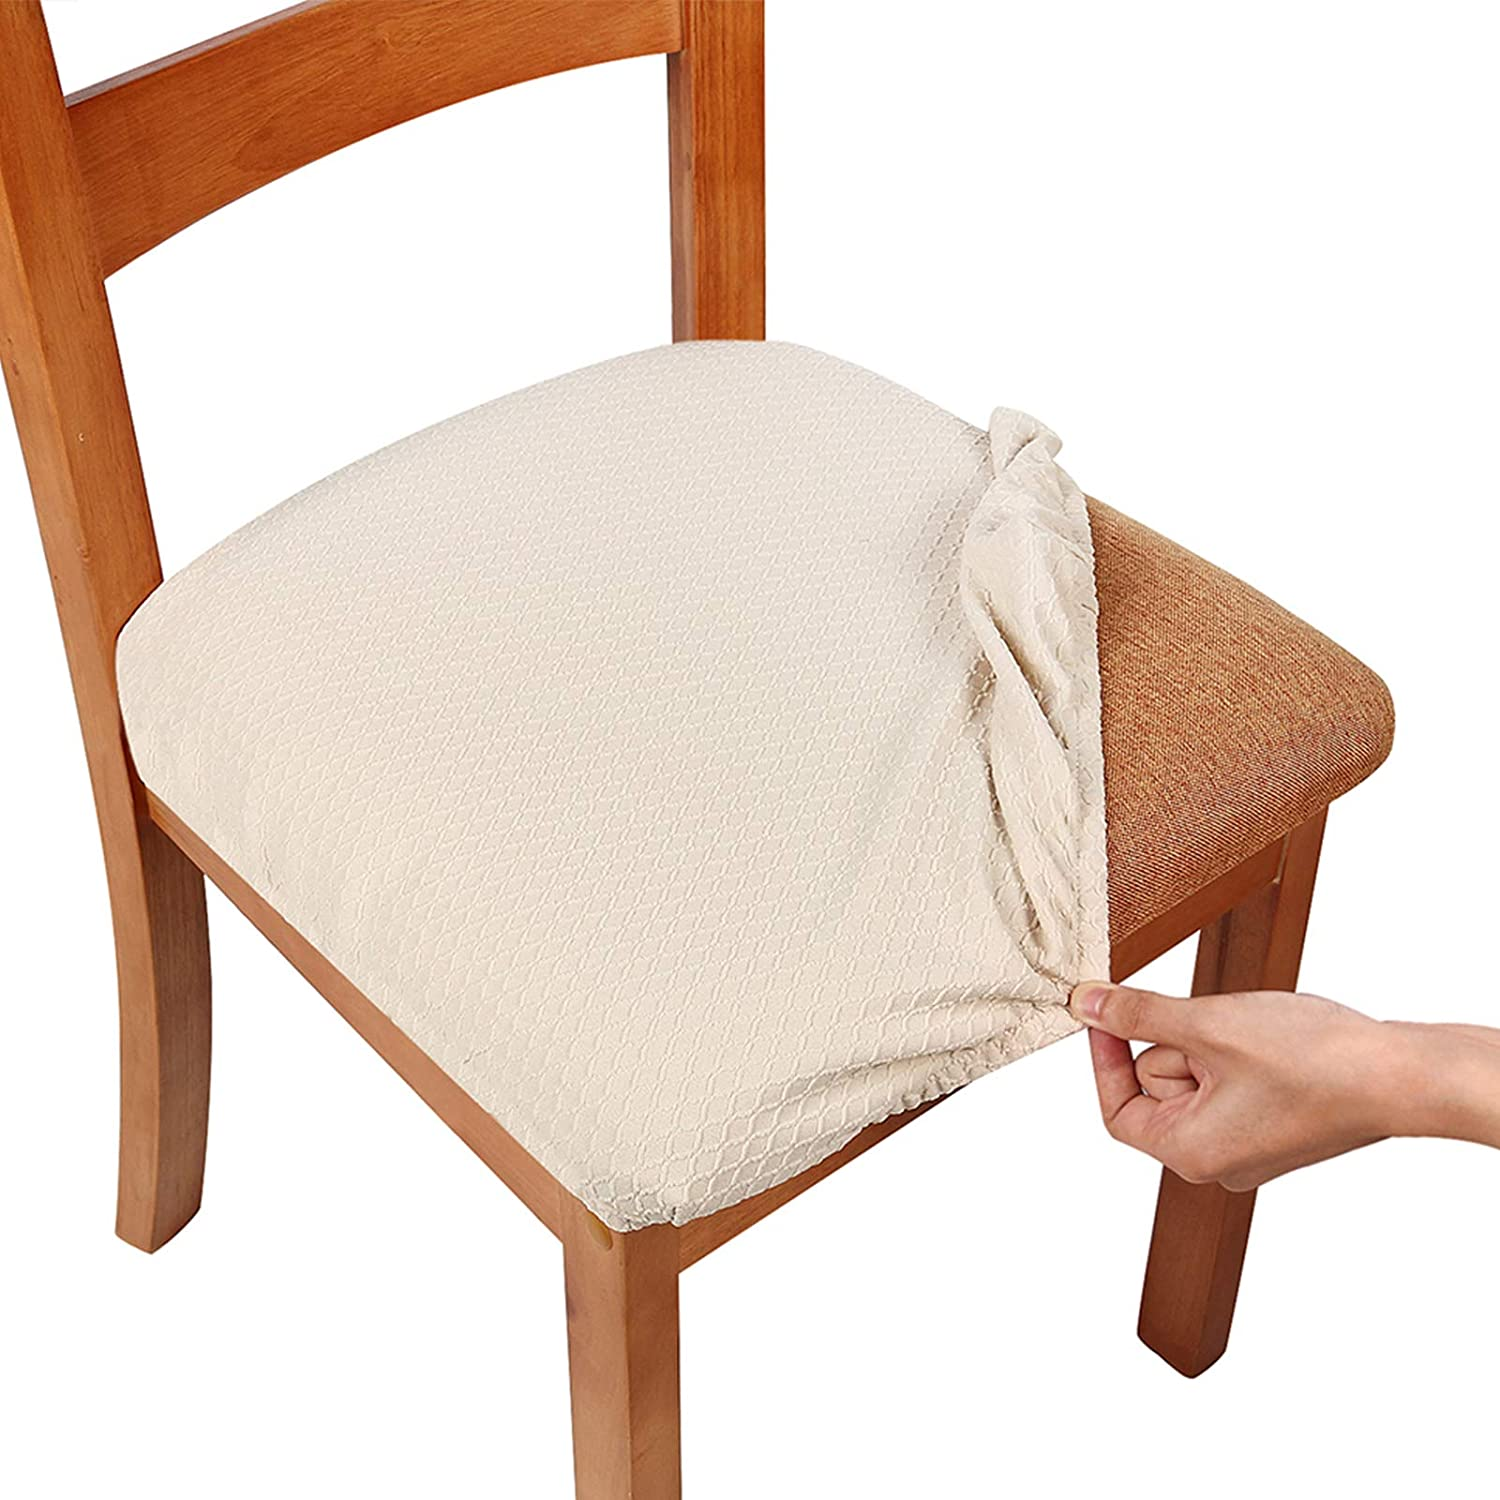 Smiry Seat Covers For Dining Room, Orange Dining Room Chair Cushions